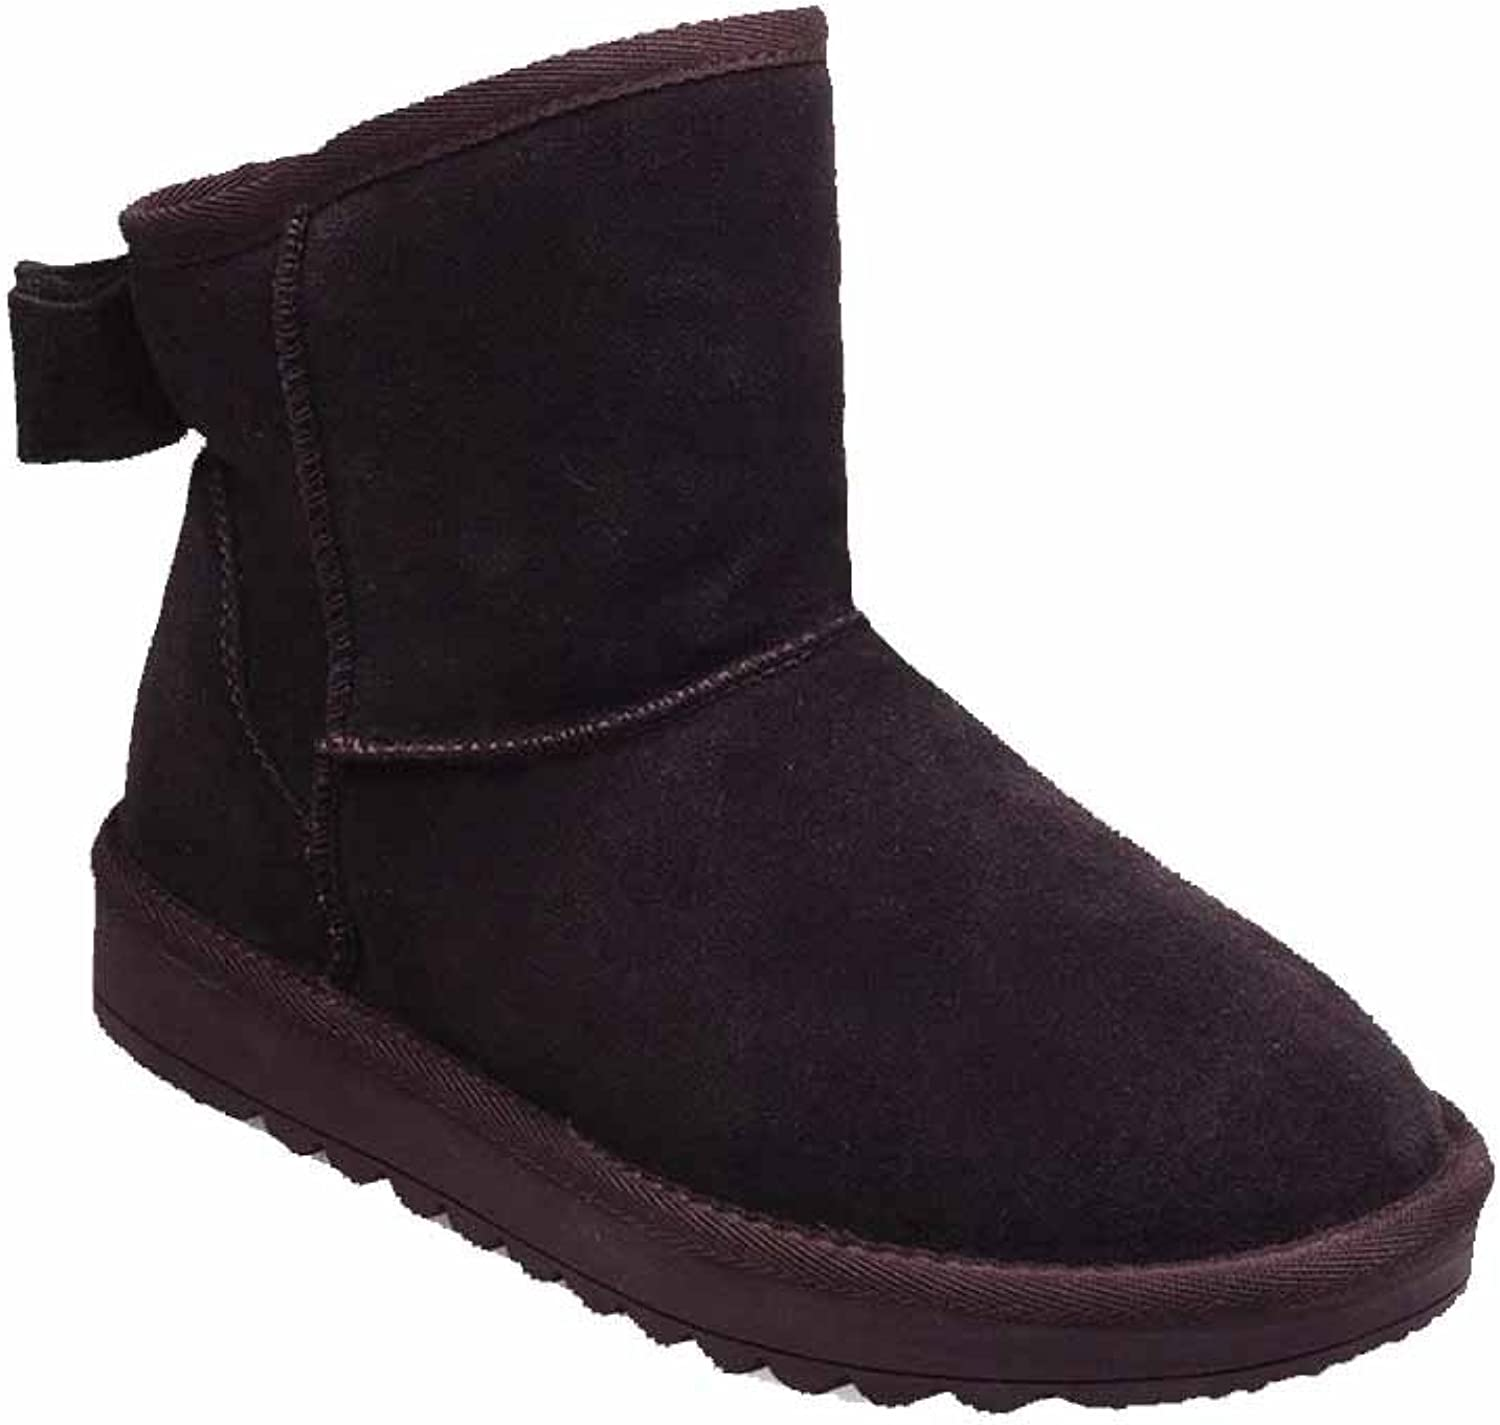 WeenFashion Women's Low-Heels Solid Round Closed Toe Frosted Pull-on Snow-Boots